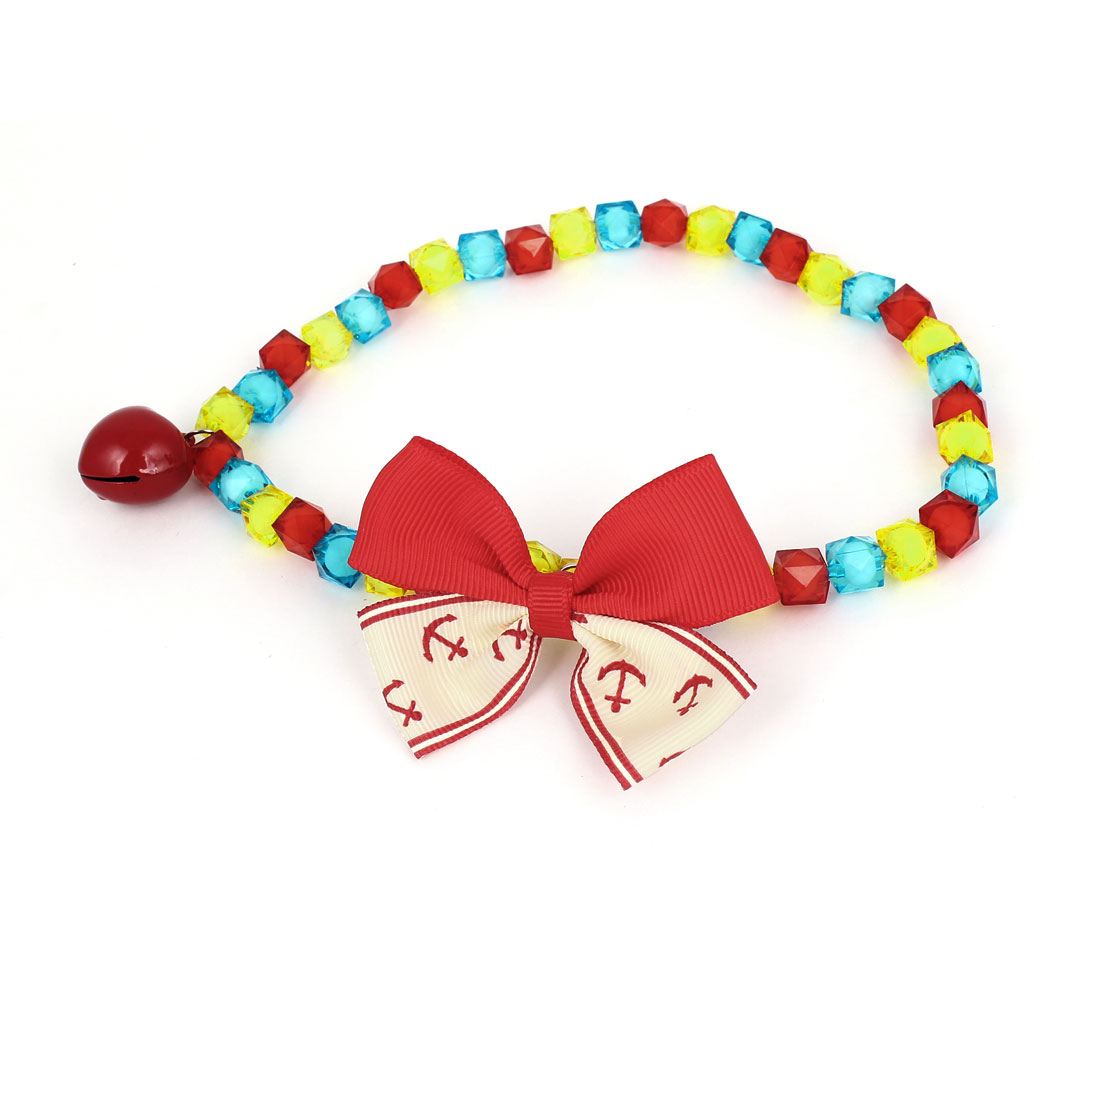 Metal Bell Pendant Bowtie Accent Pet Dog Plastic Faceted Beads Collar Necklace Assorted Color L